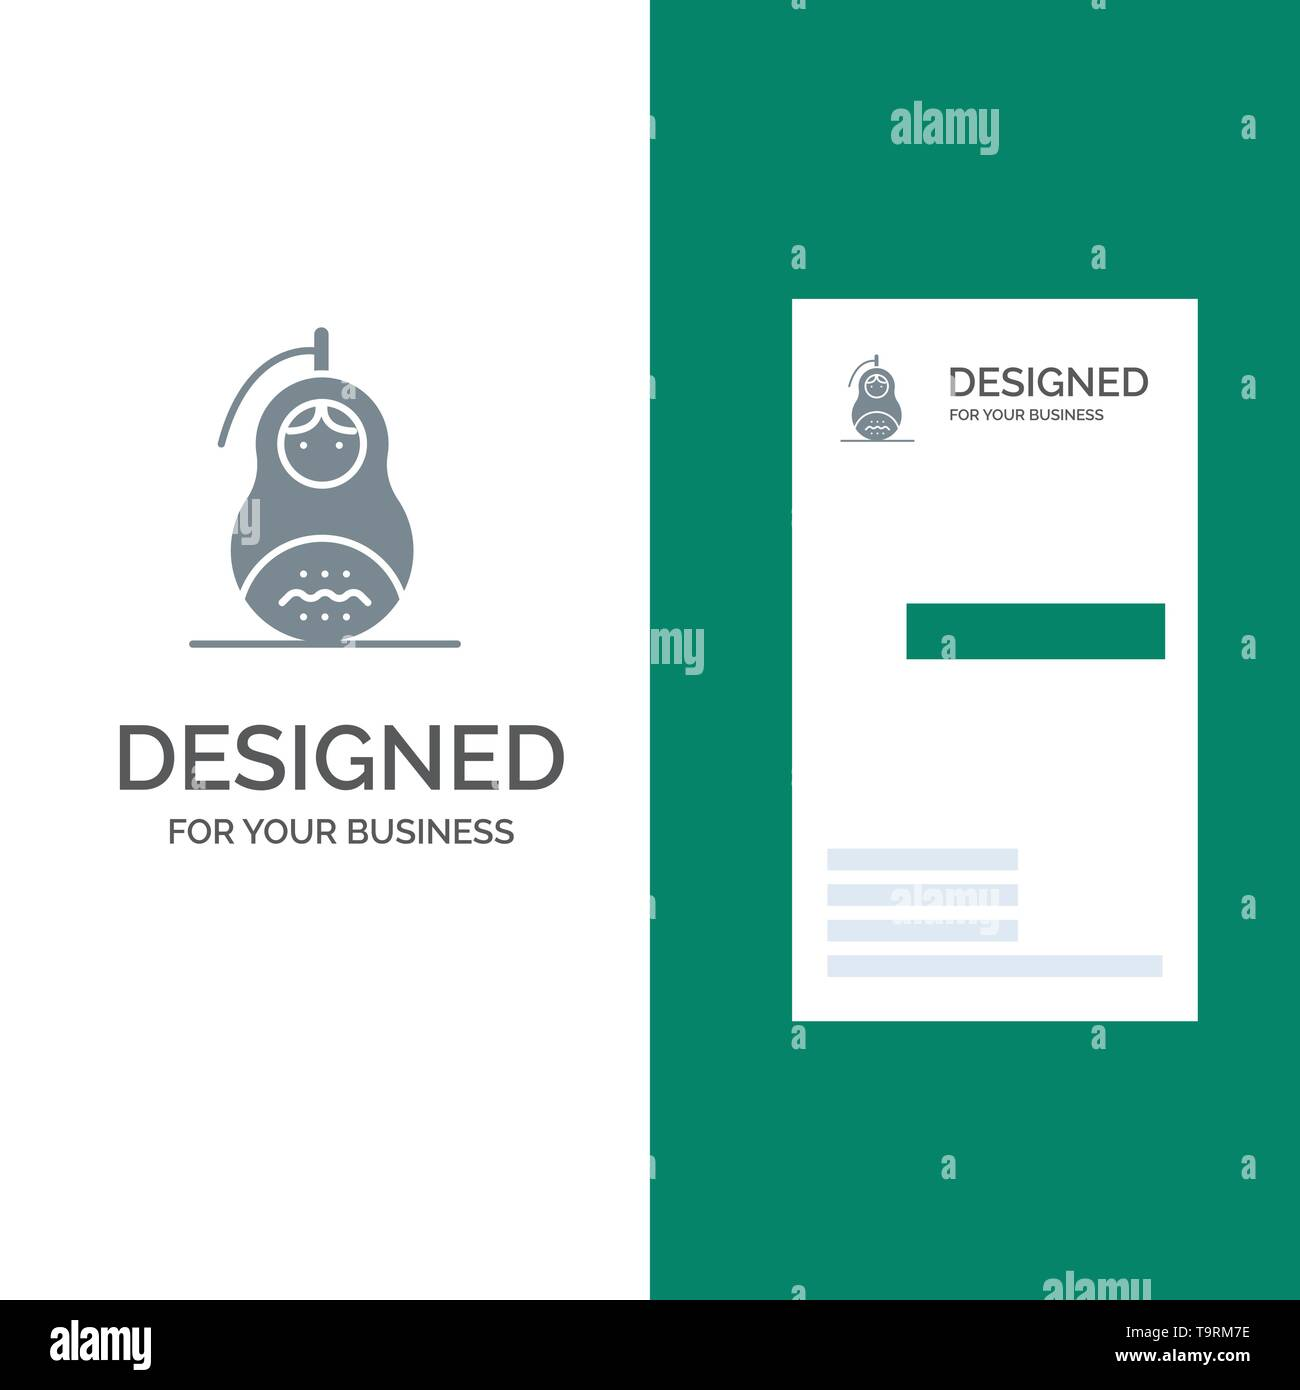 Fraud, Grenade, Matrioshka, Peace, Russia Grey Logo Design and Business Card Template - Stock Image